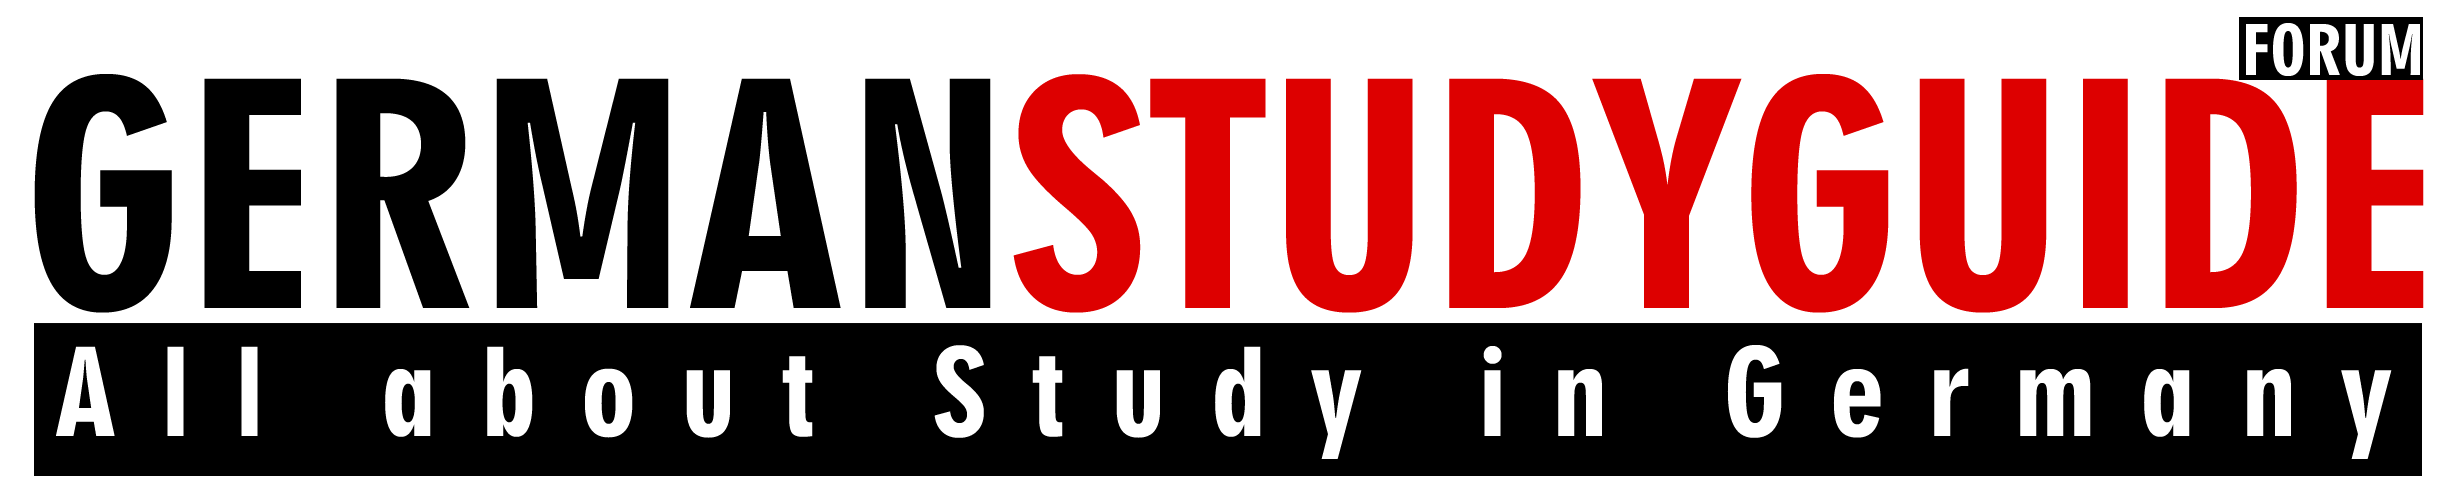 German Study Guide Question and Answer Forum – GSG Forum Logo